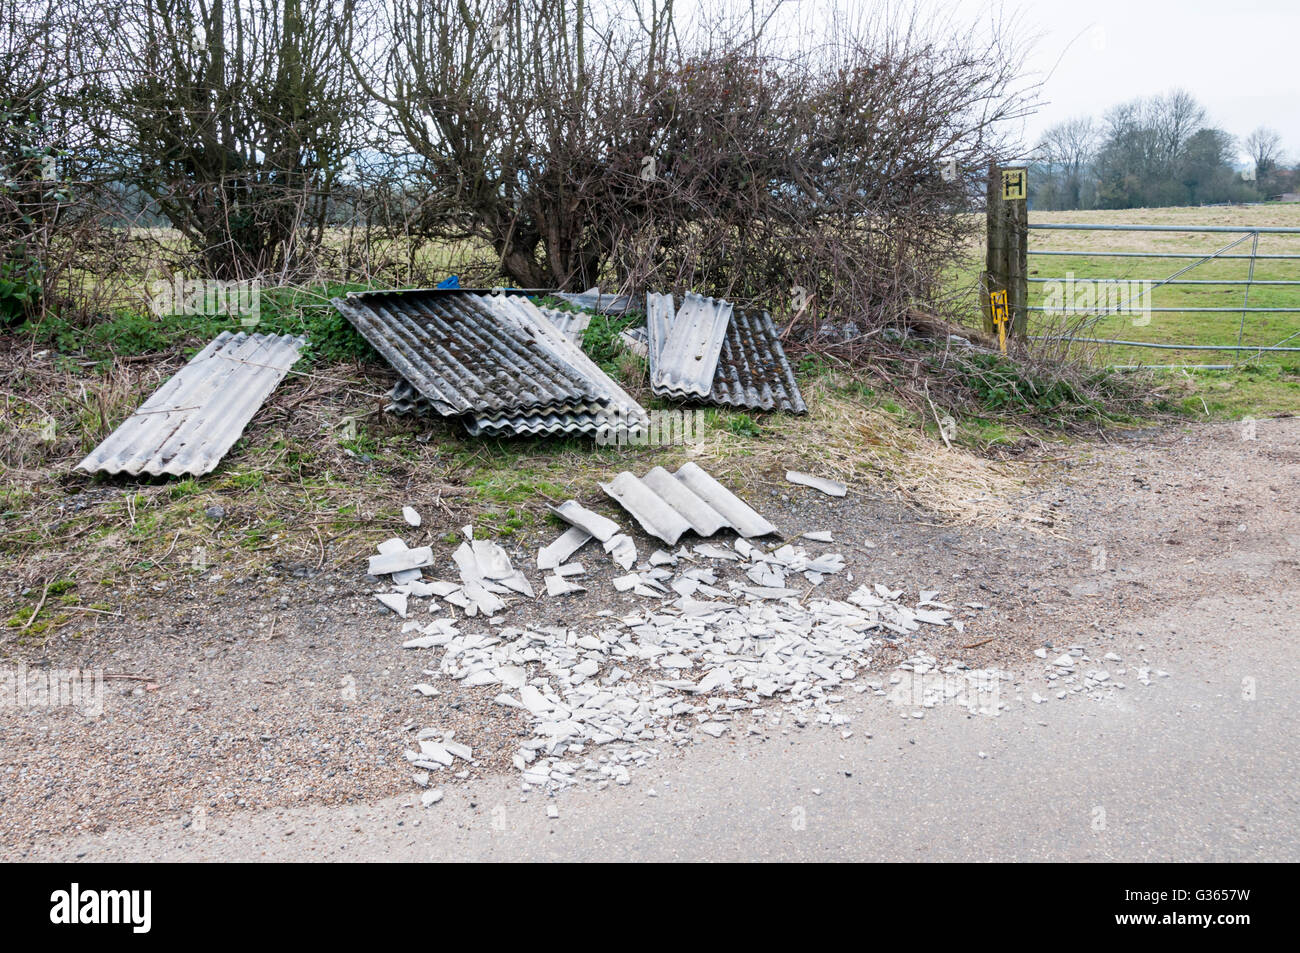 Waste asbestos sheeting dumped in a country lane. - Stock Image